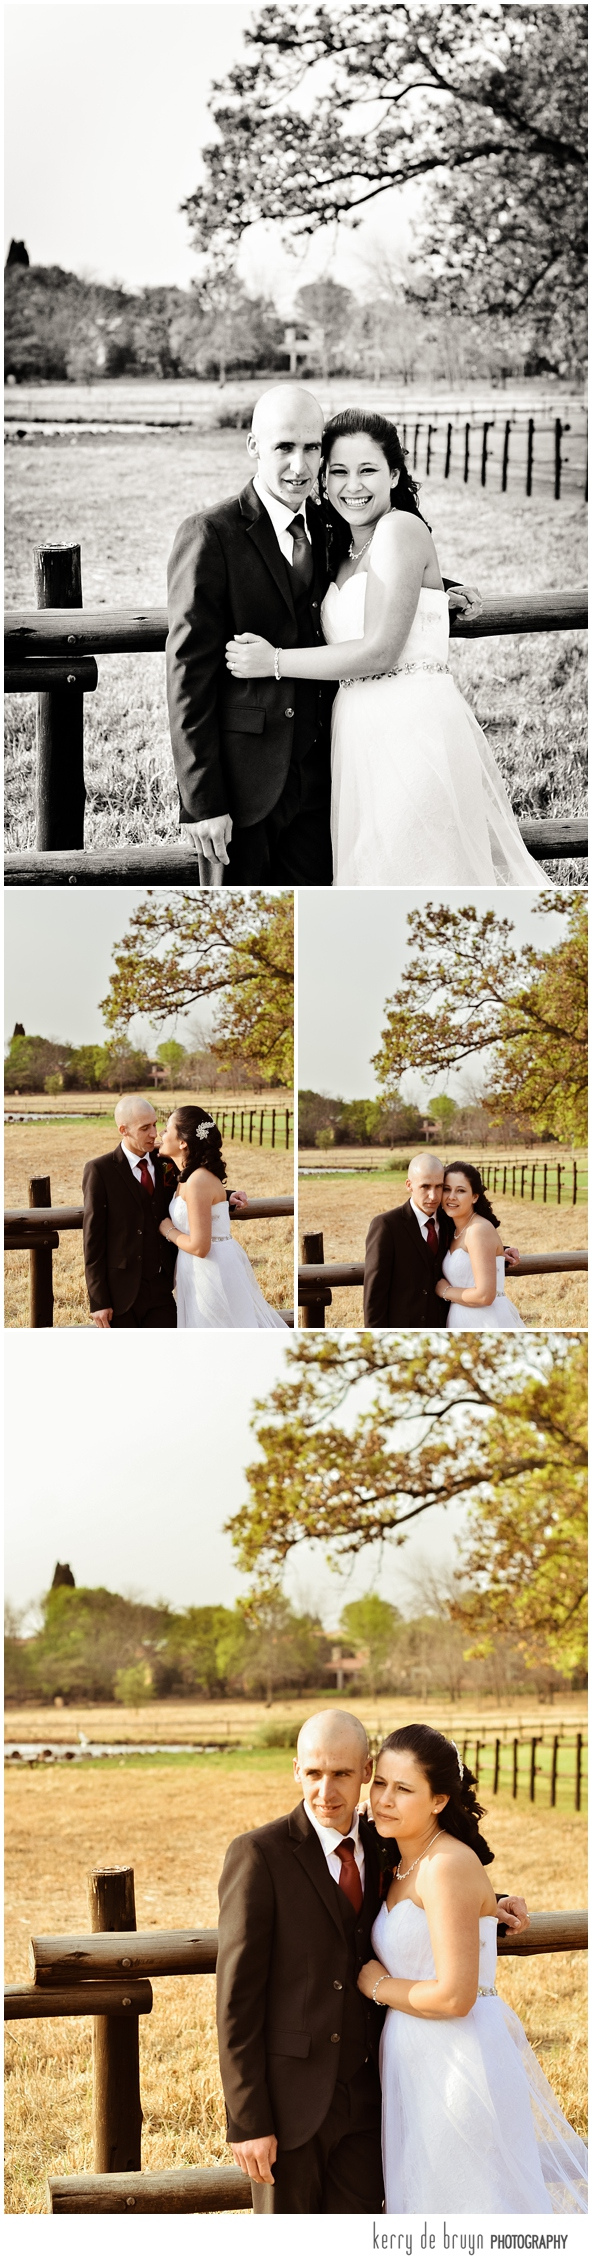 Pretoria wedding photography